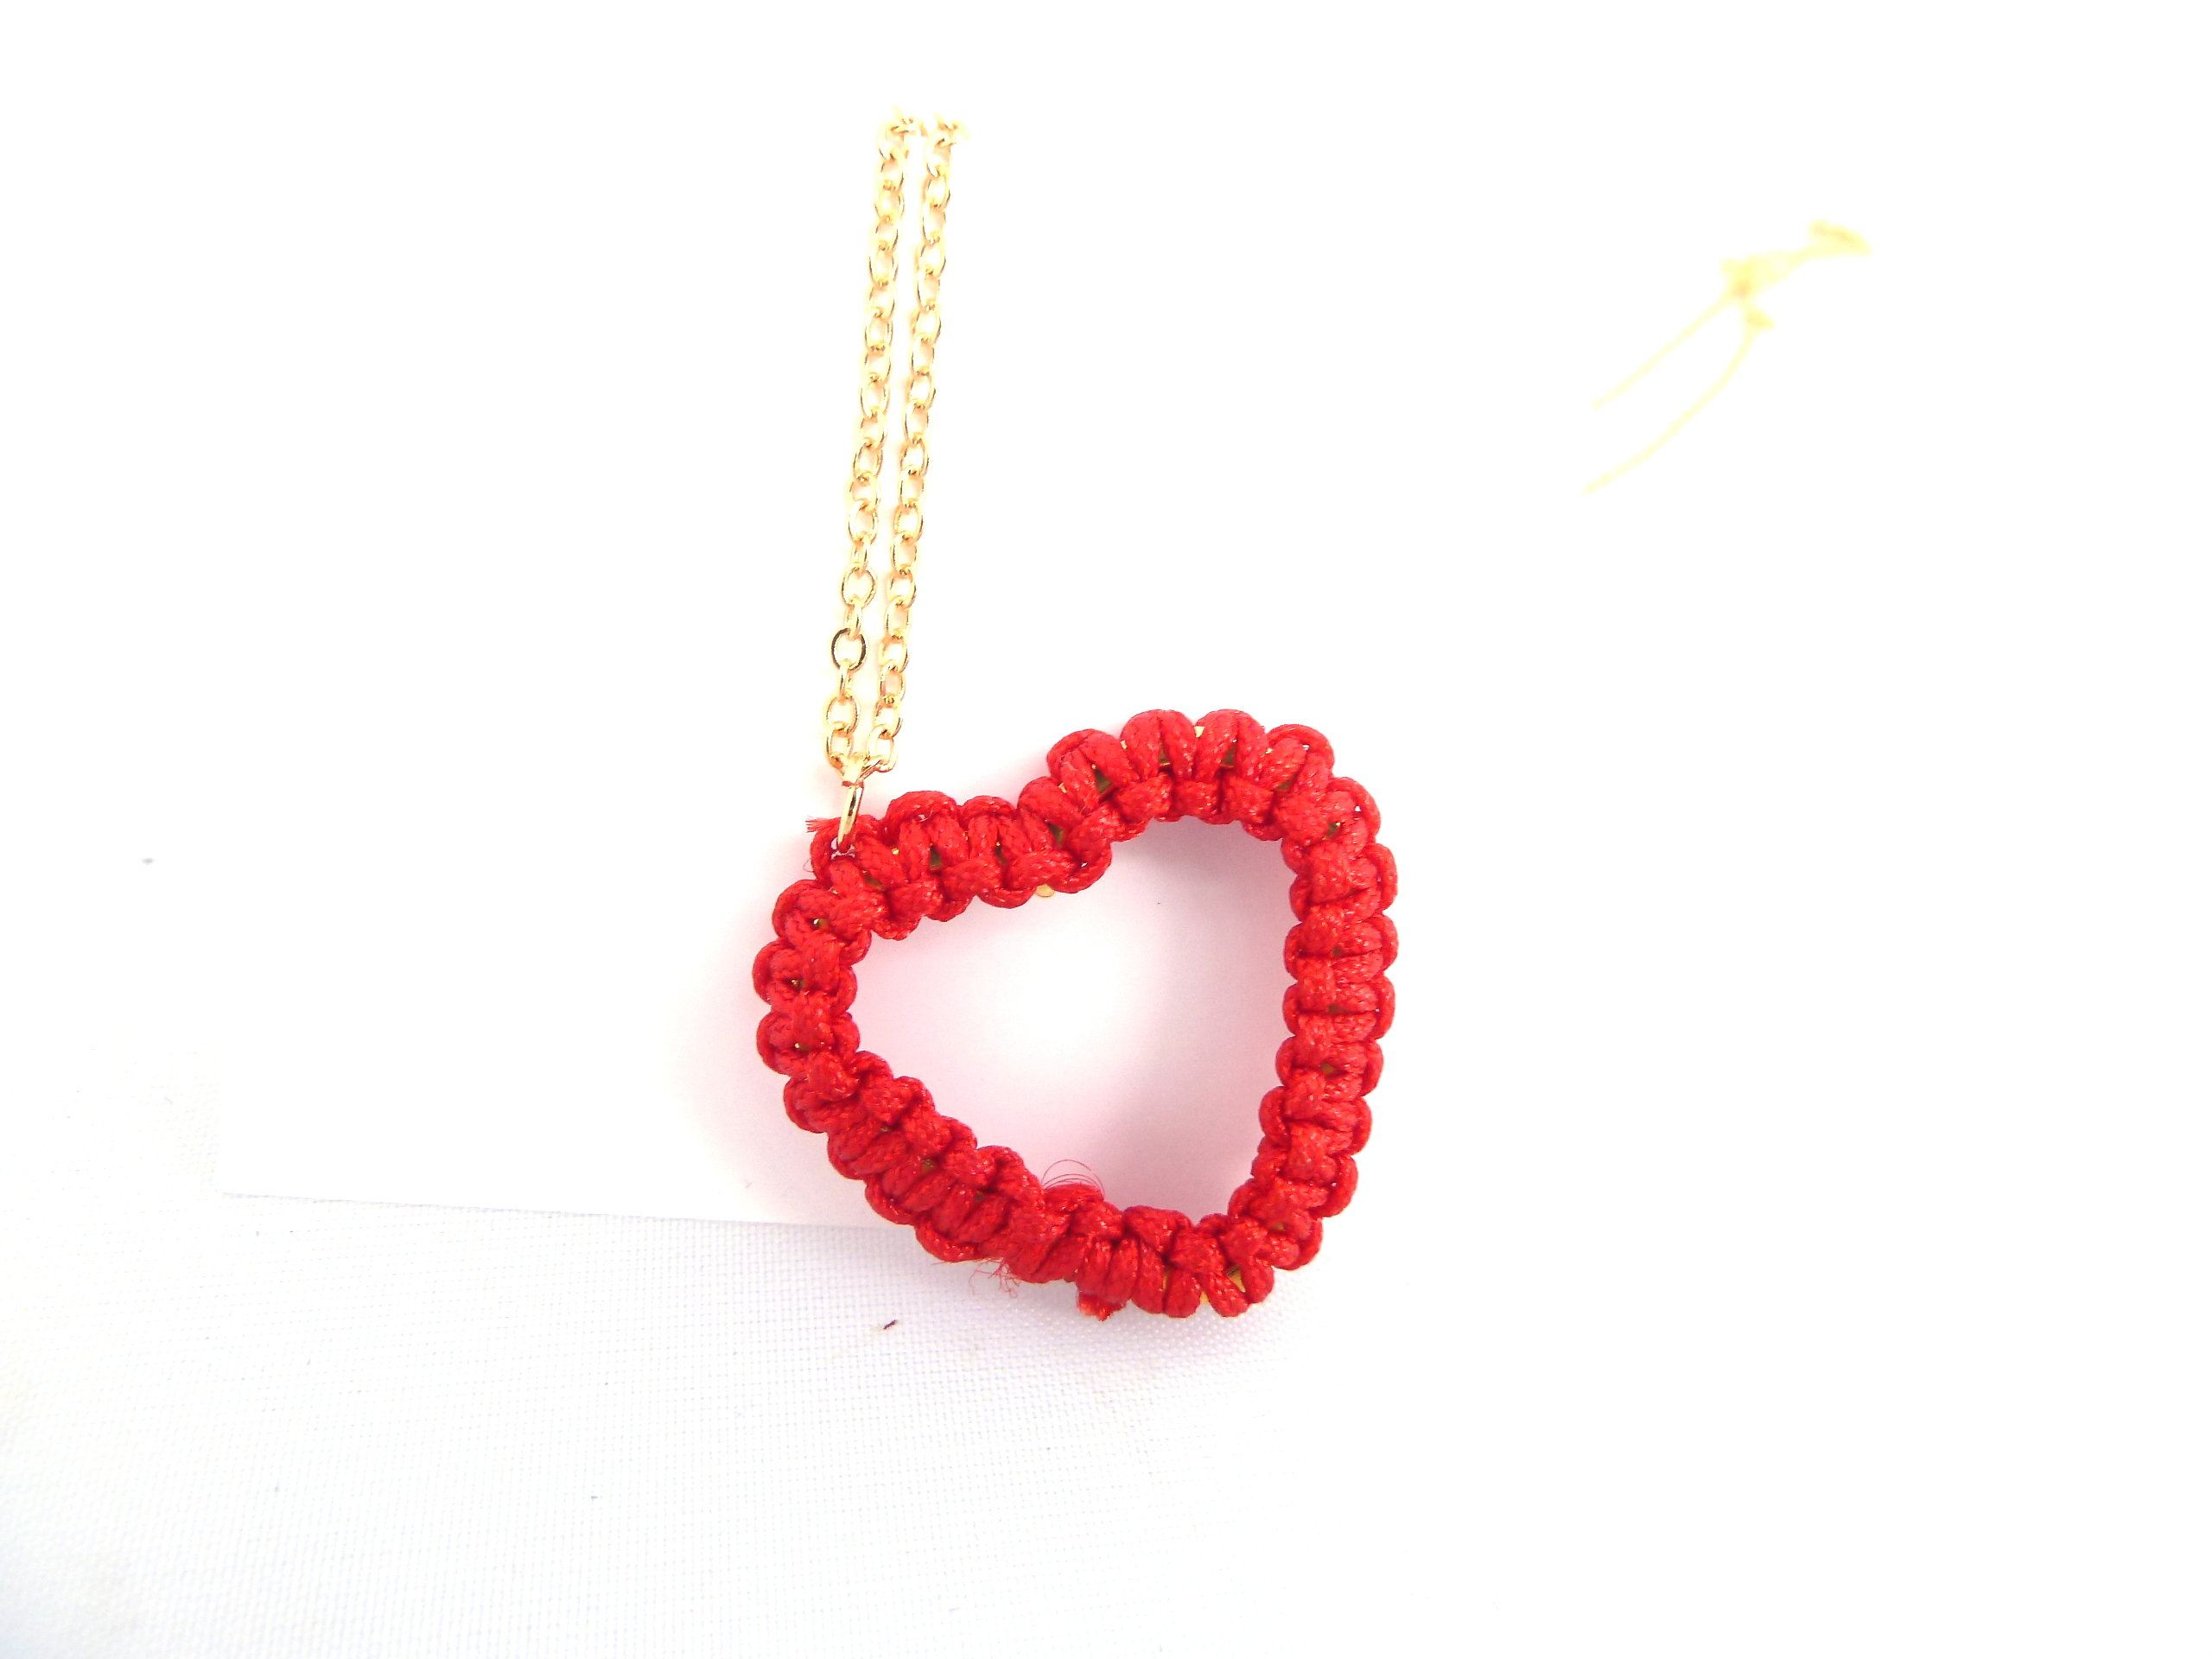 family necklaces heart collections red desert shop necklace earrings dh hearts and